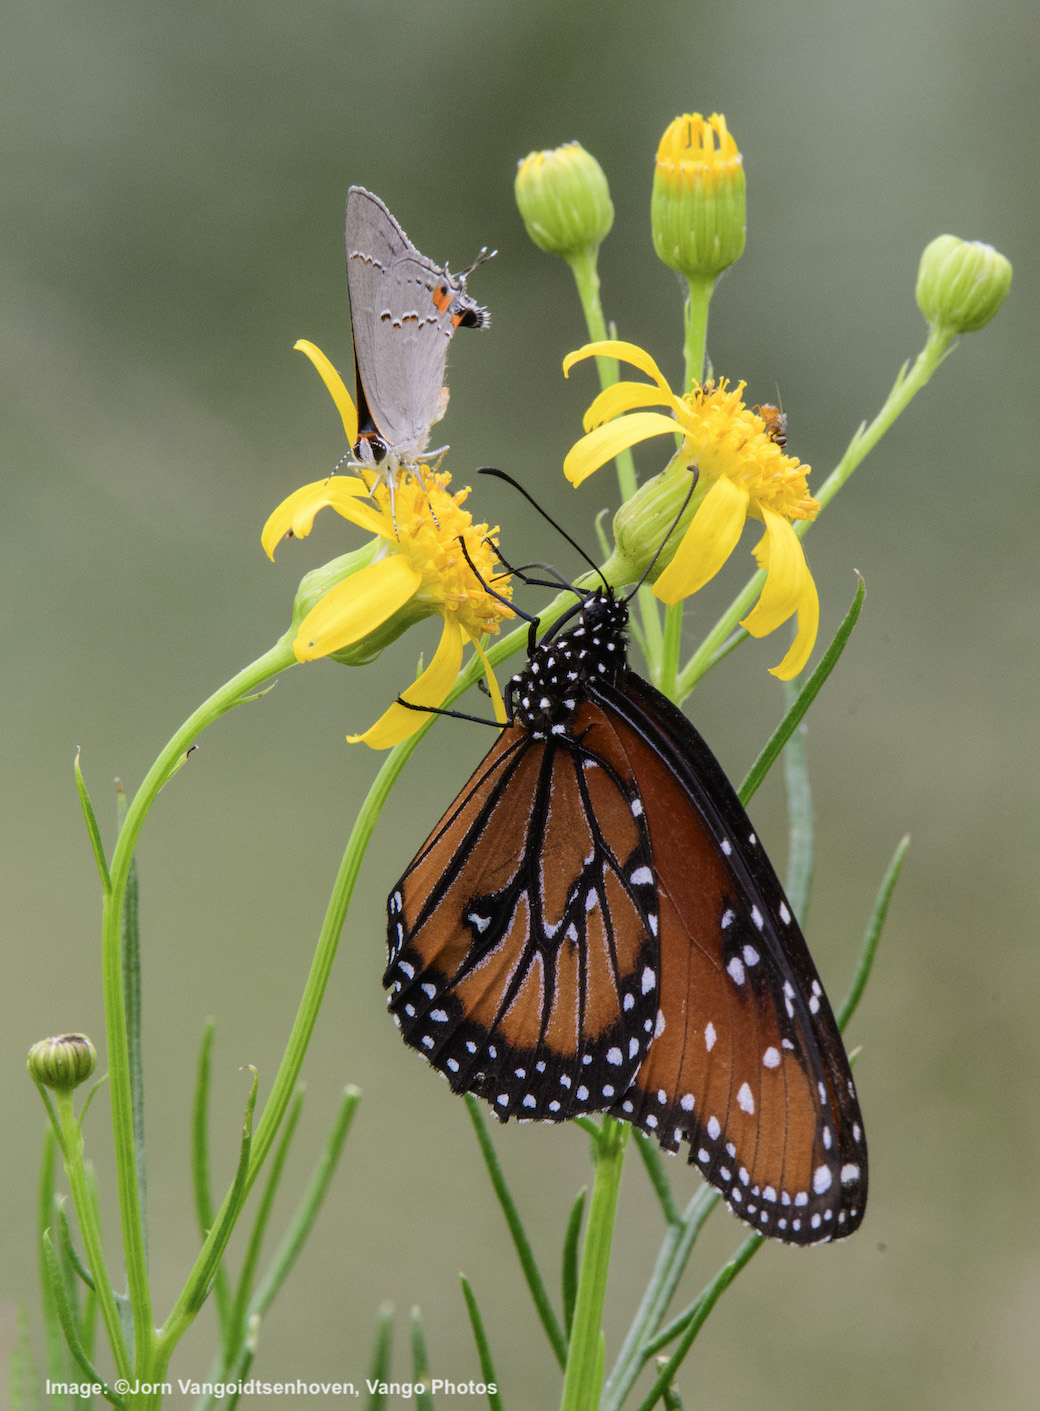 BUTTERFLIES, INCLUDING THIS MONARCH LOOK-ALIKE, MAKE A REST STOP. Image: ©Jorn Vangoidtsenhoven, Vango Photos